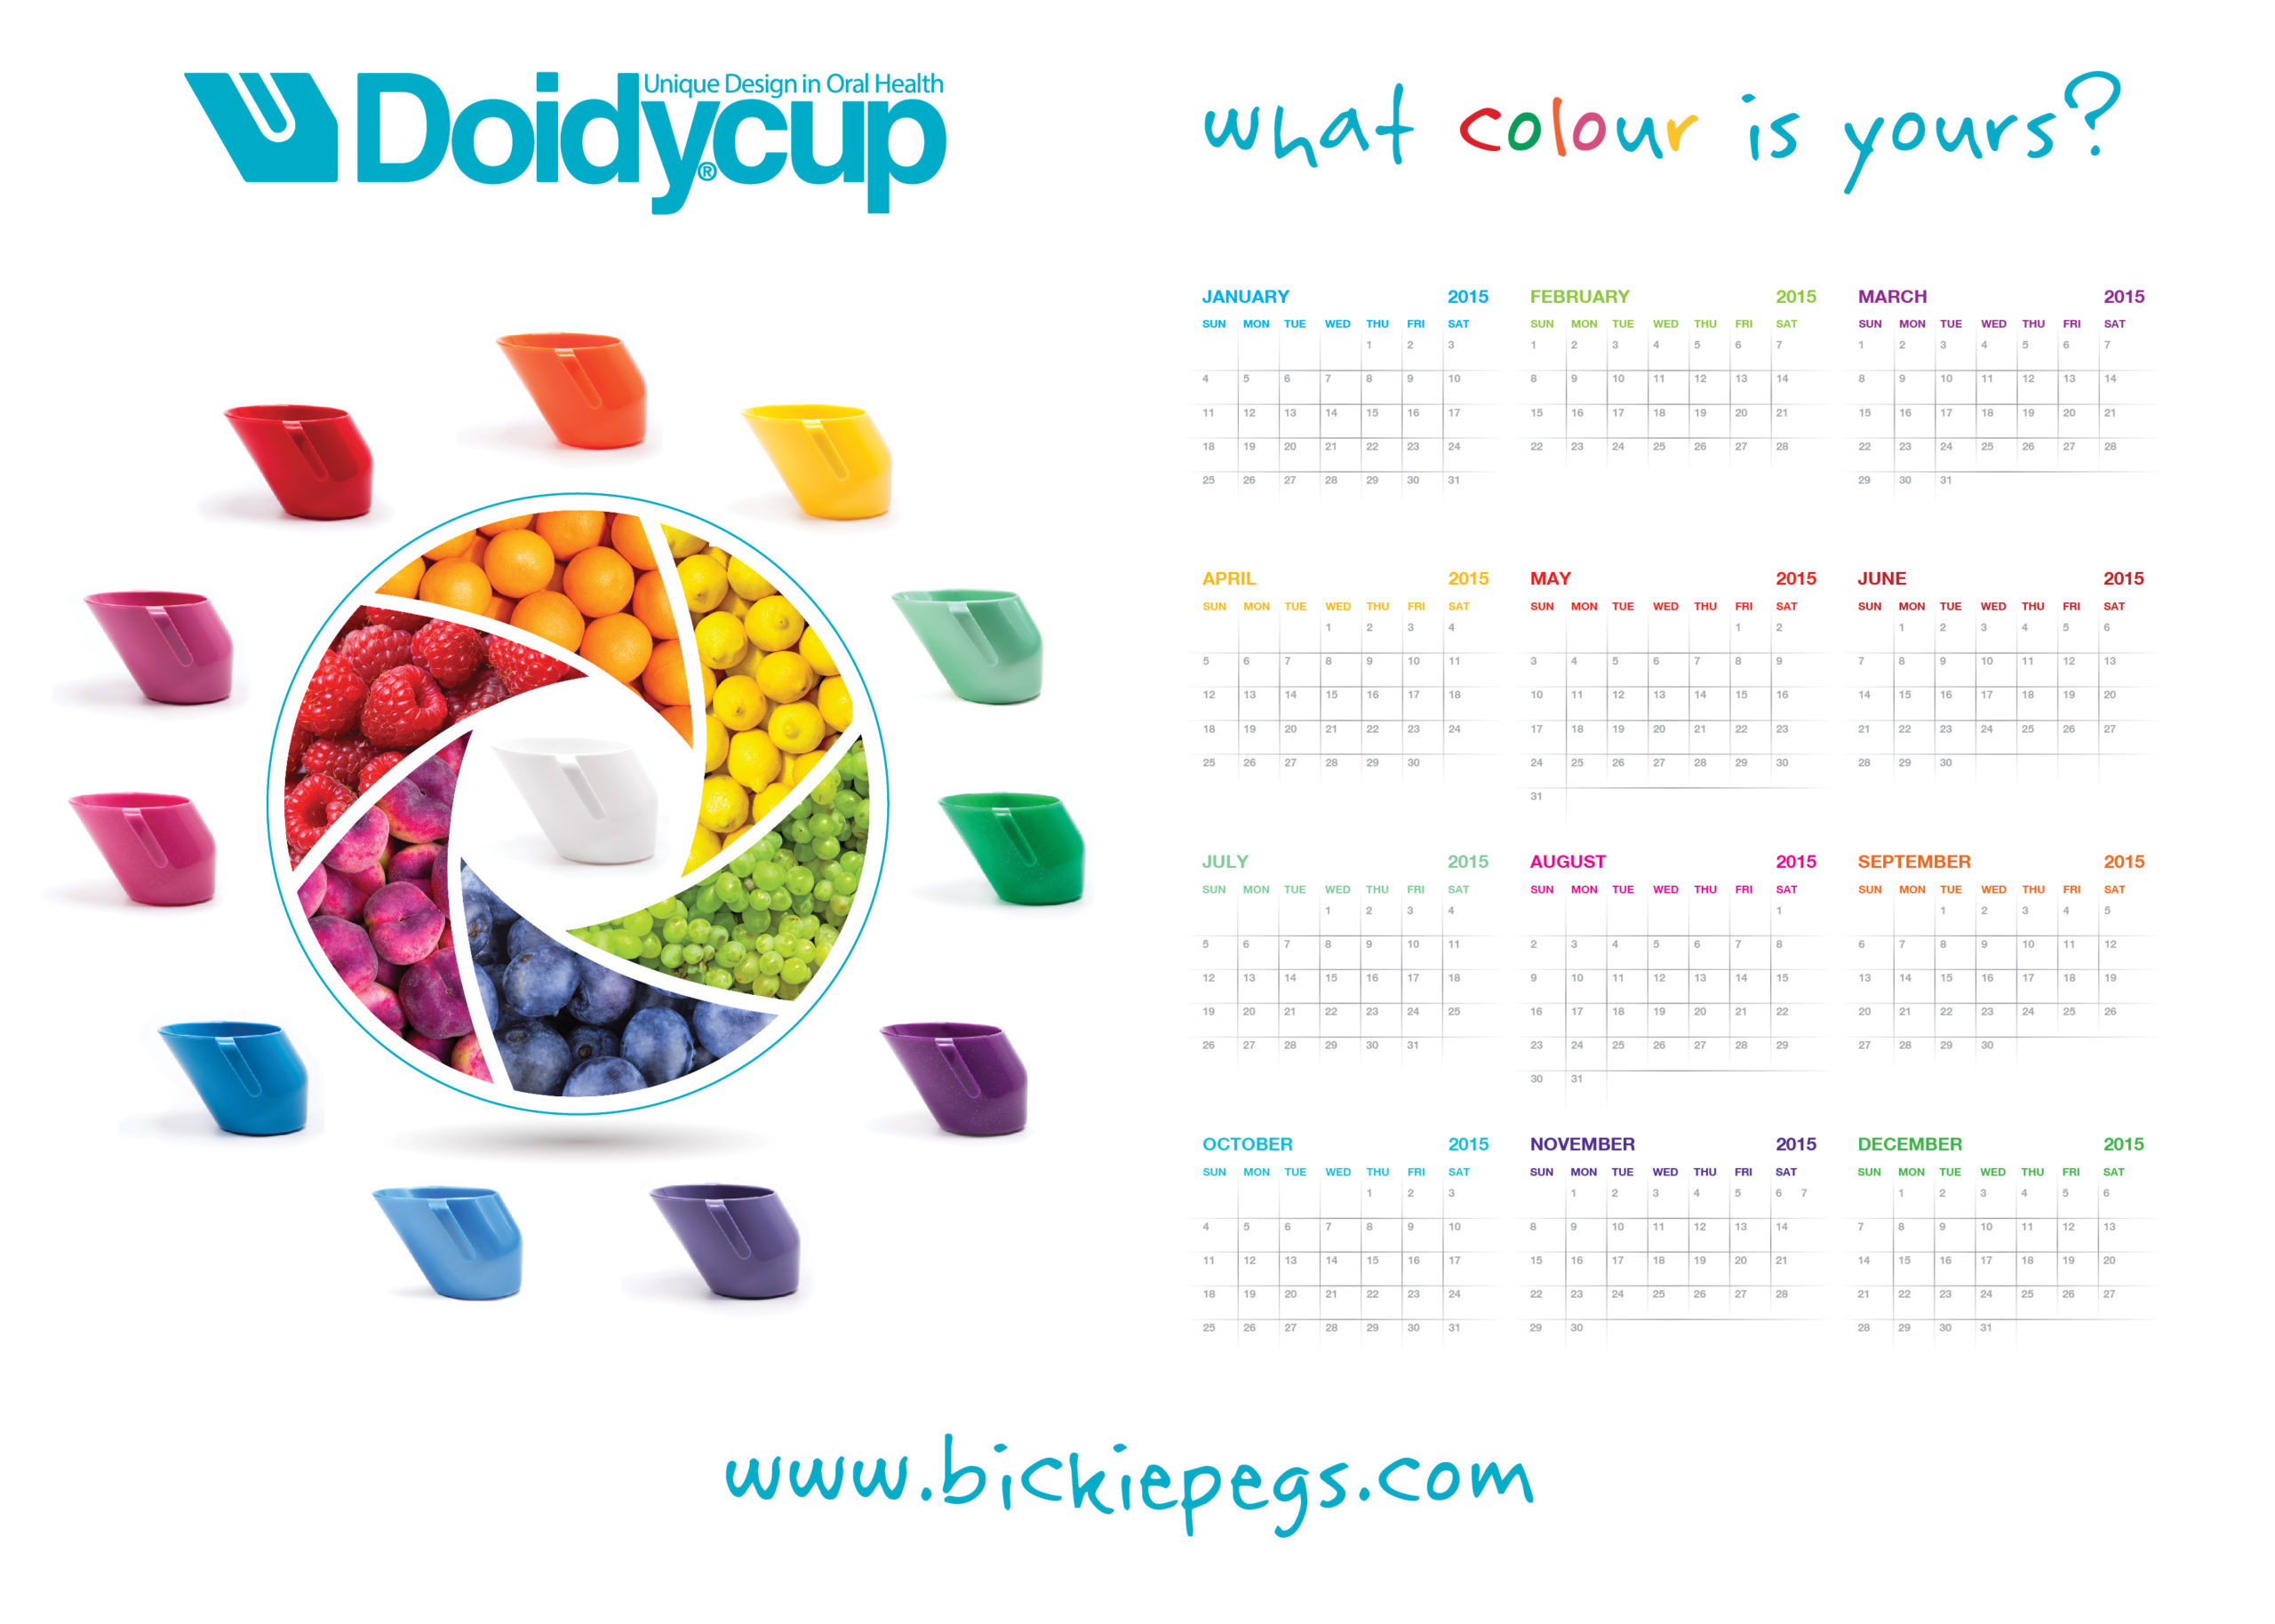 Colour Chart Doidy Cup